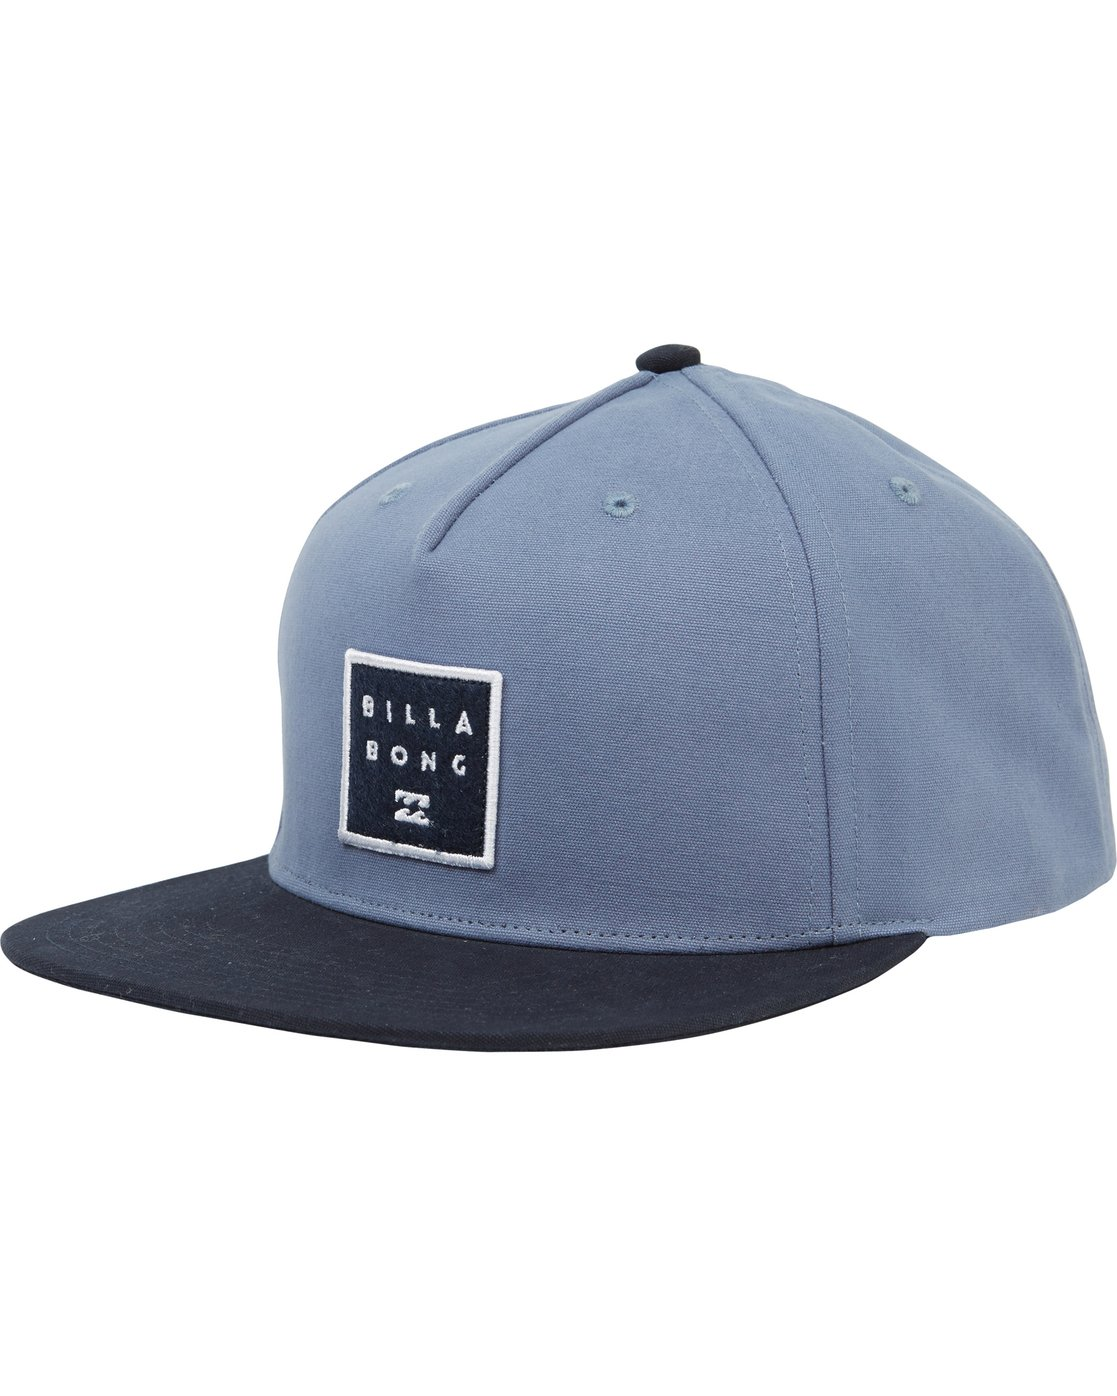 15bcf02d6d1 Stacked snapback hat blue mahwnbas billabong jpg 1117x1396 Stacked hats  snap backs